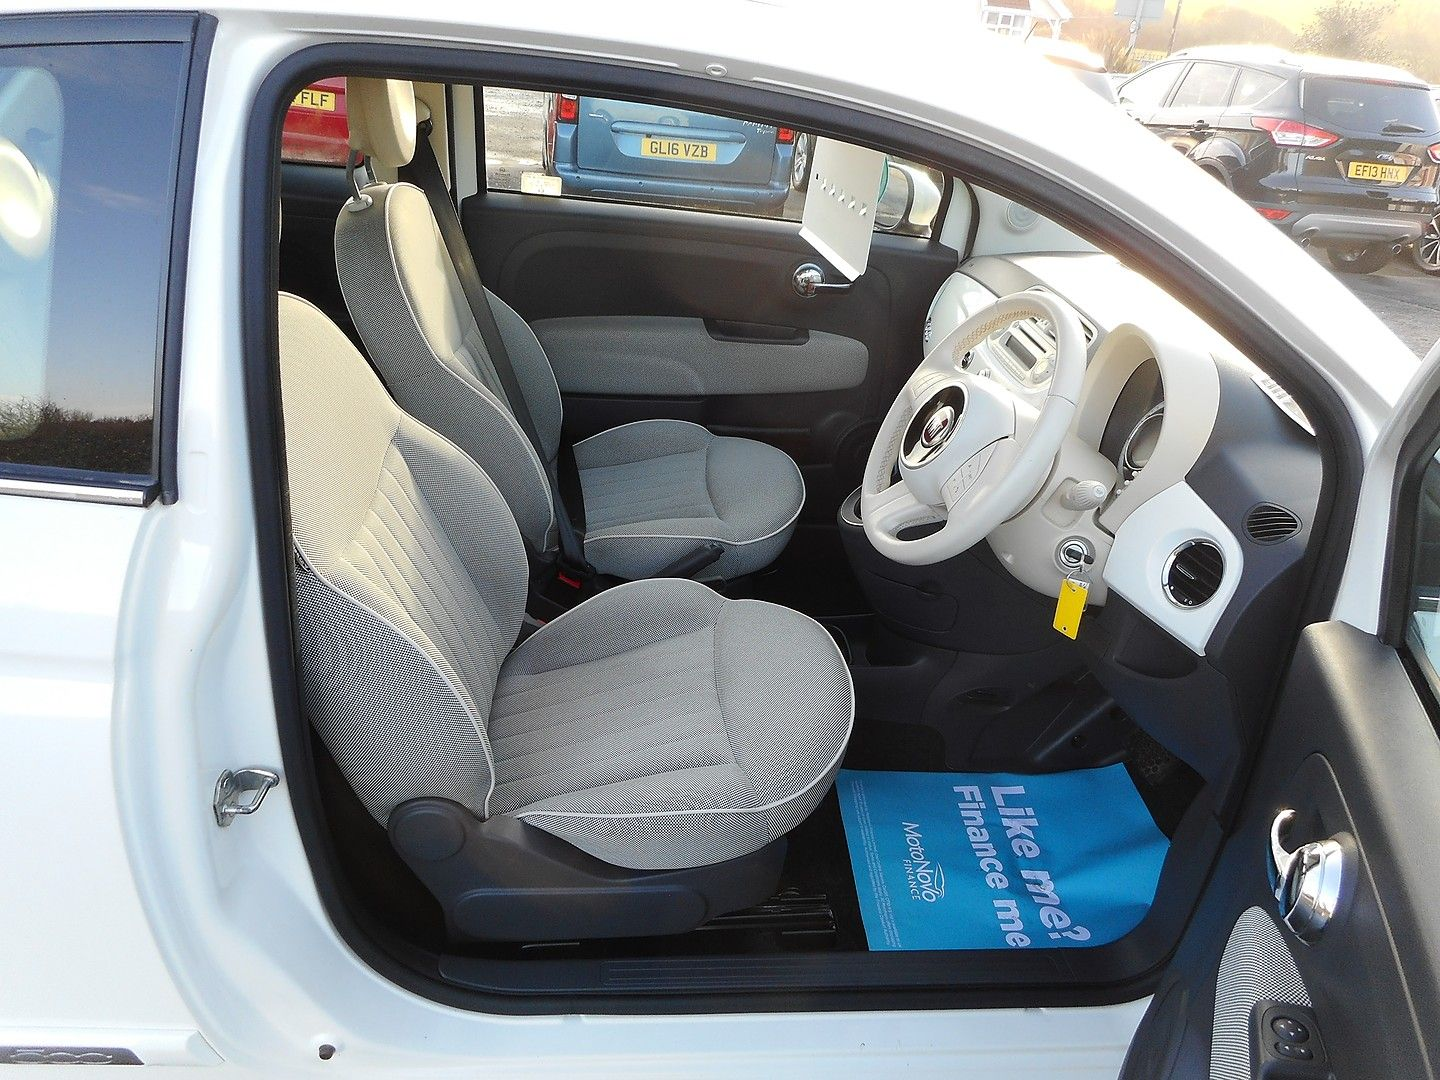 FIAT 500 1.2i Lounge S/S automatic (2013) - Picture 7